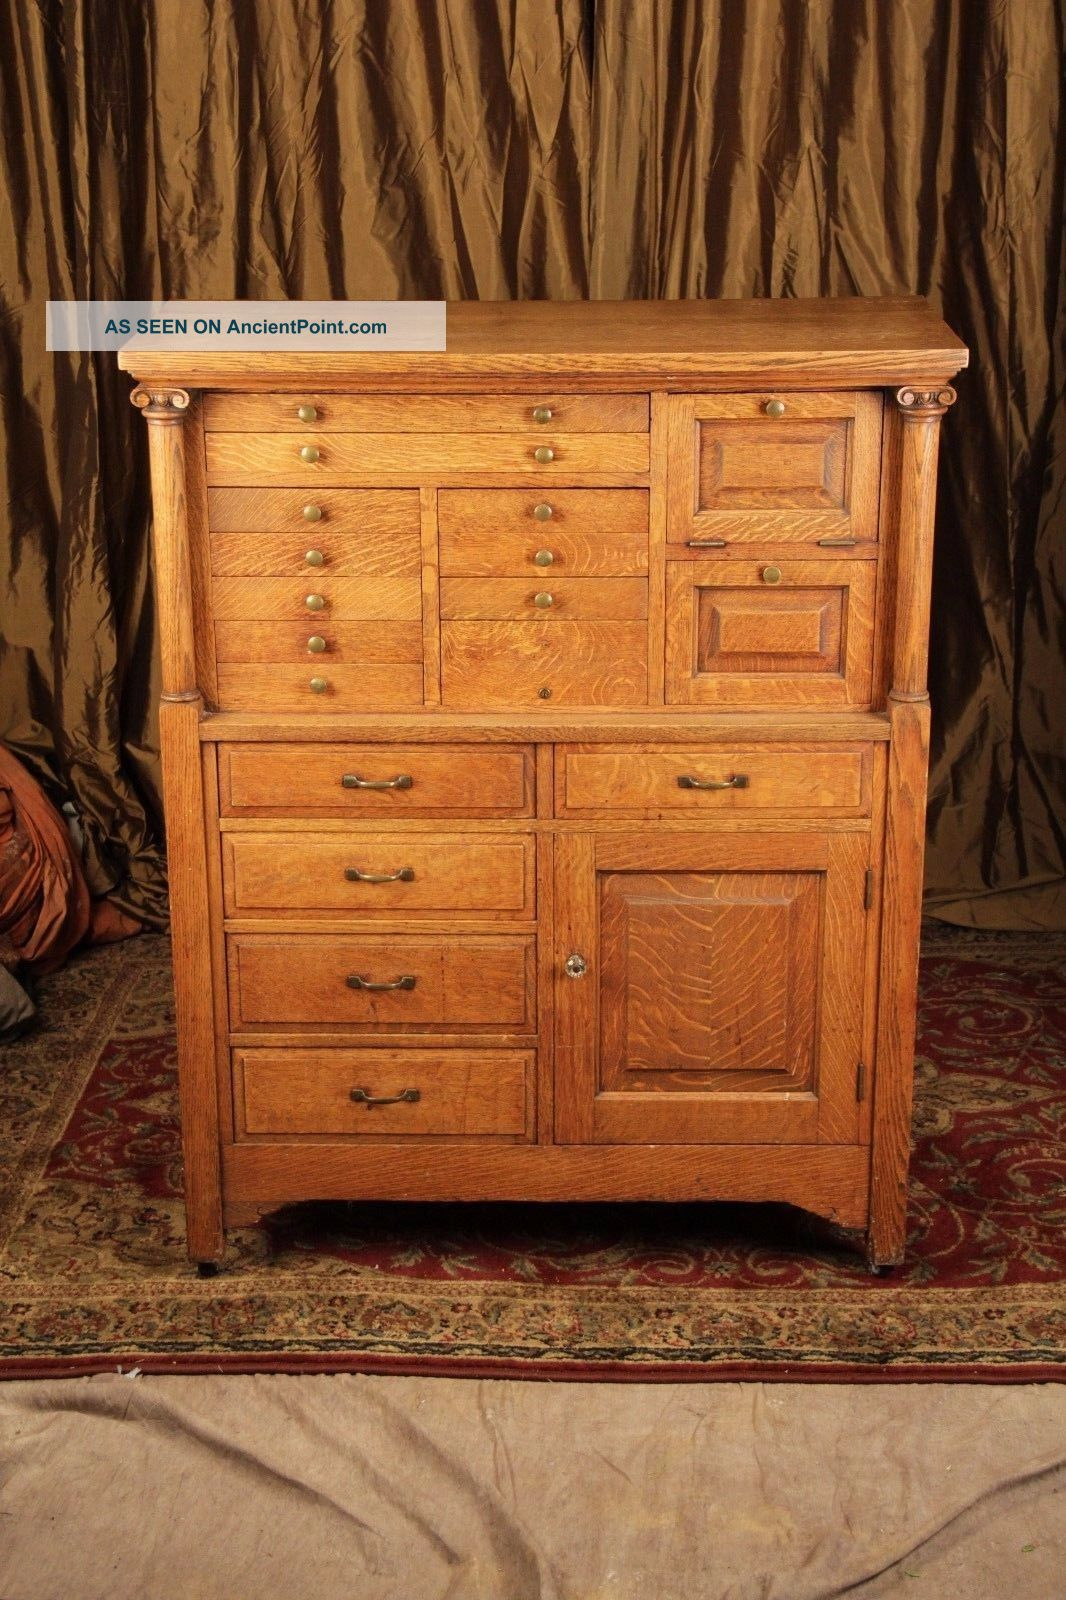 Antique Dental Cabinet Early 1900 ' S.  Will Deliver 1900-1950 photo